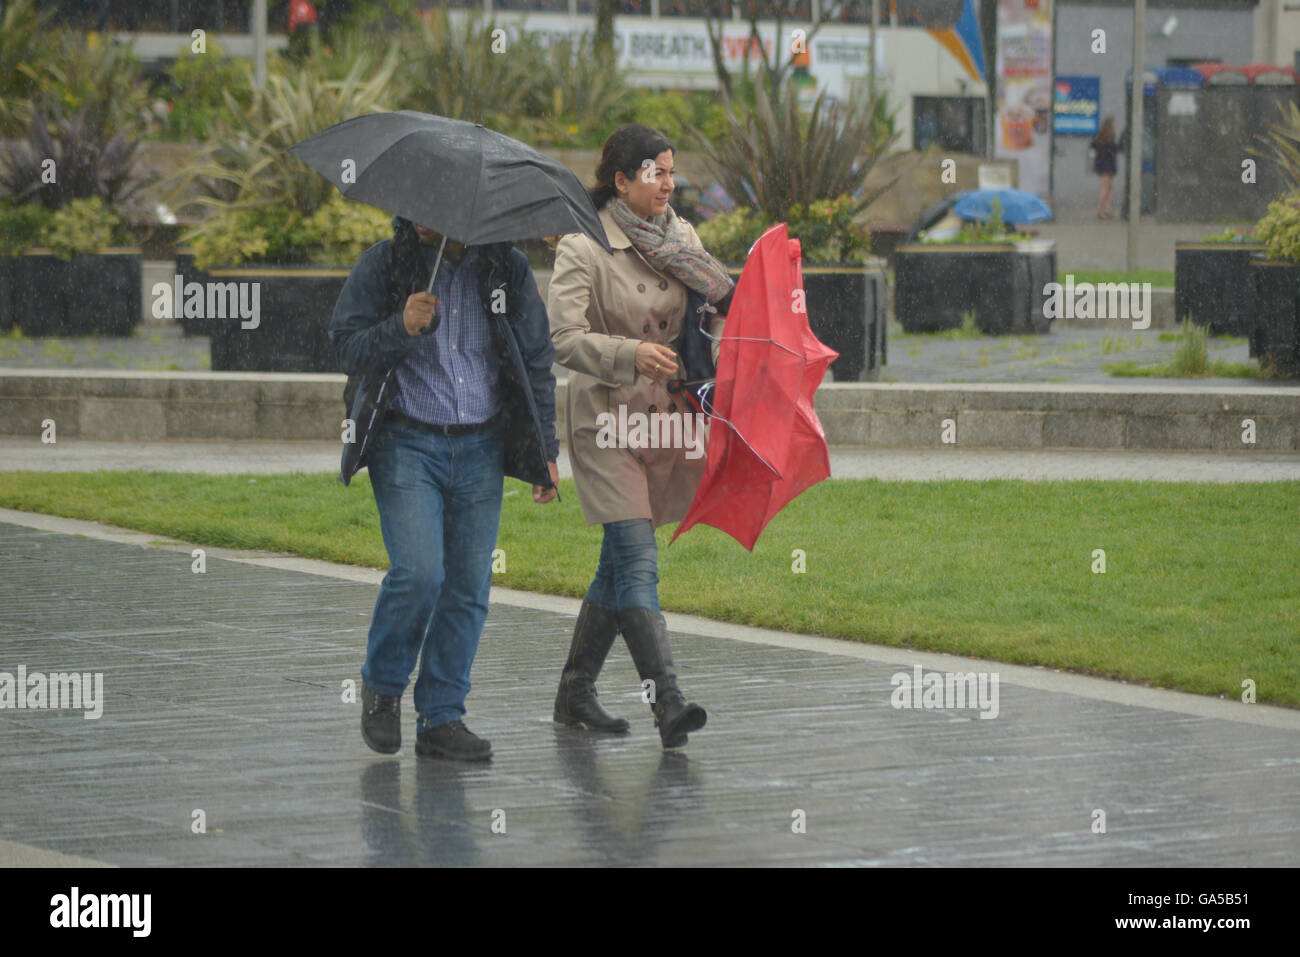 Manchester, UK. 02nd July, 2016. People, believed to be from Manchester, experiencing rainy weather on July 2nd, Stock Photo